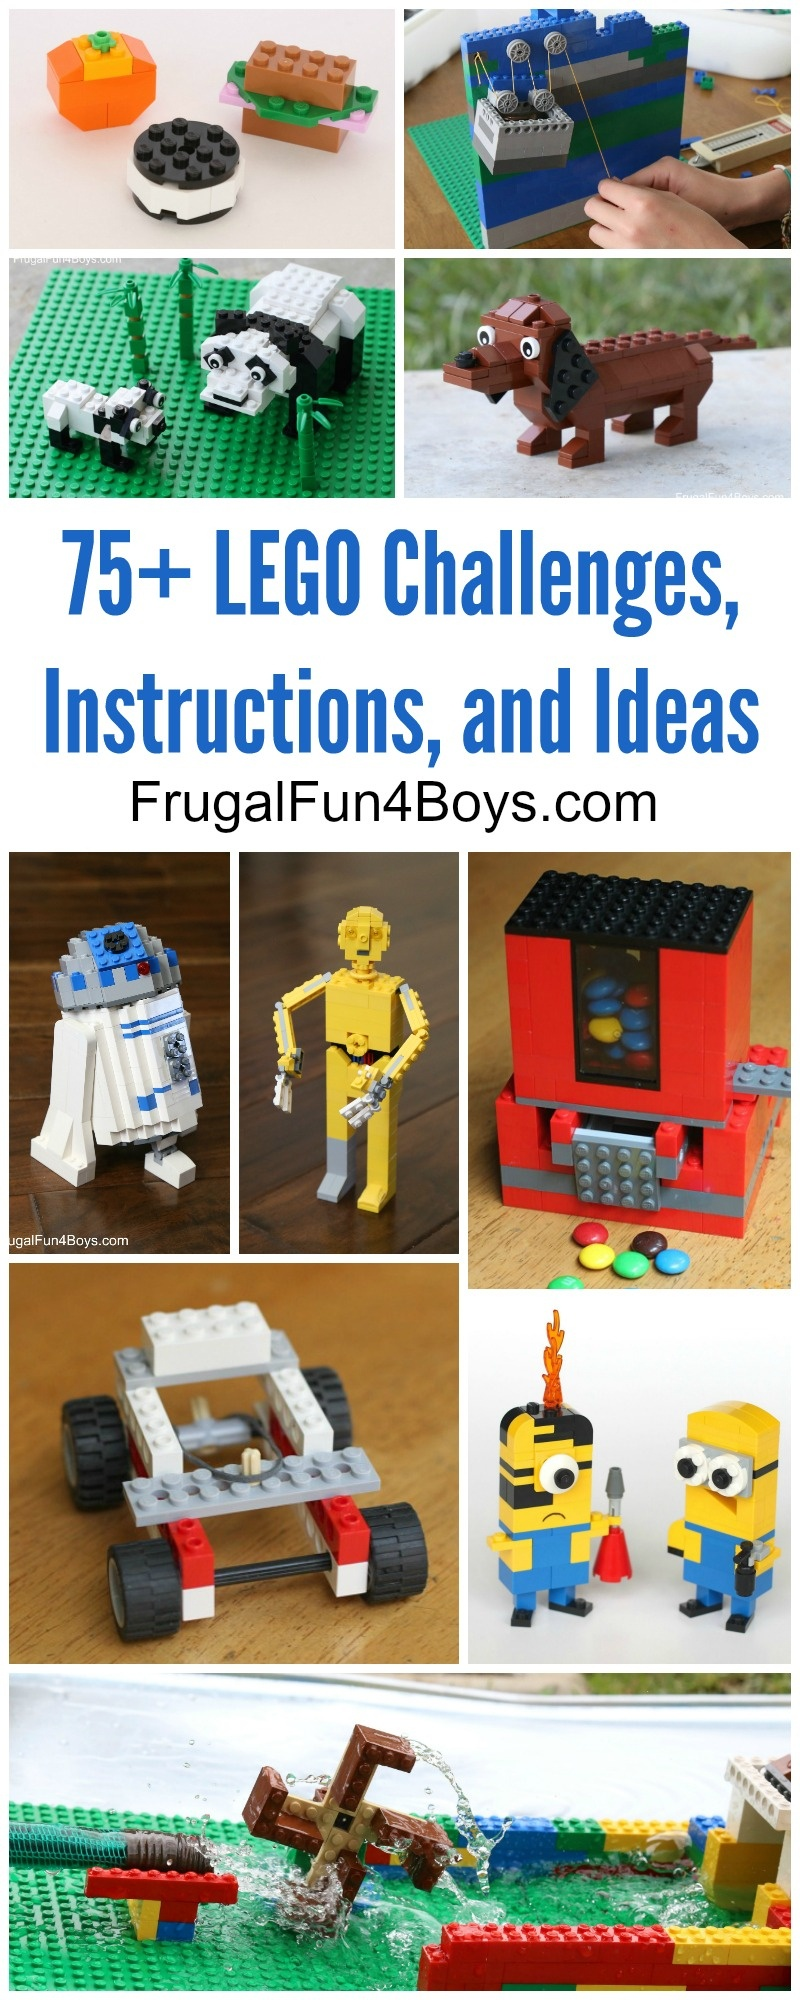 75+ Lego Building Projects For Kids - Frugal Fun For Boys And Girls - Free Printable Lego Instructions